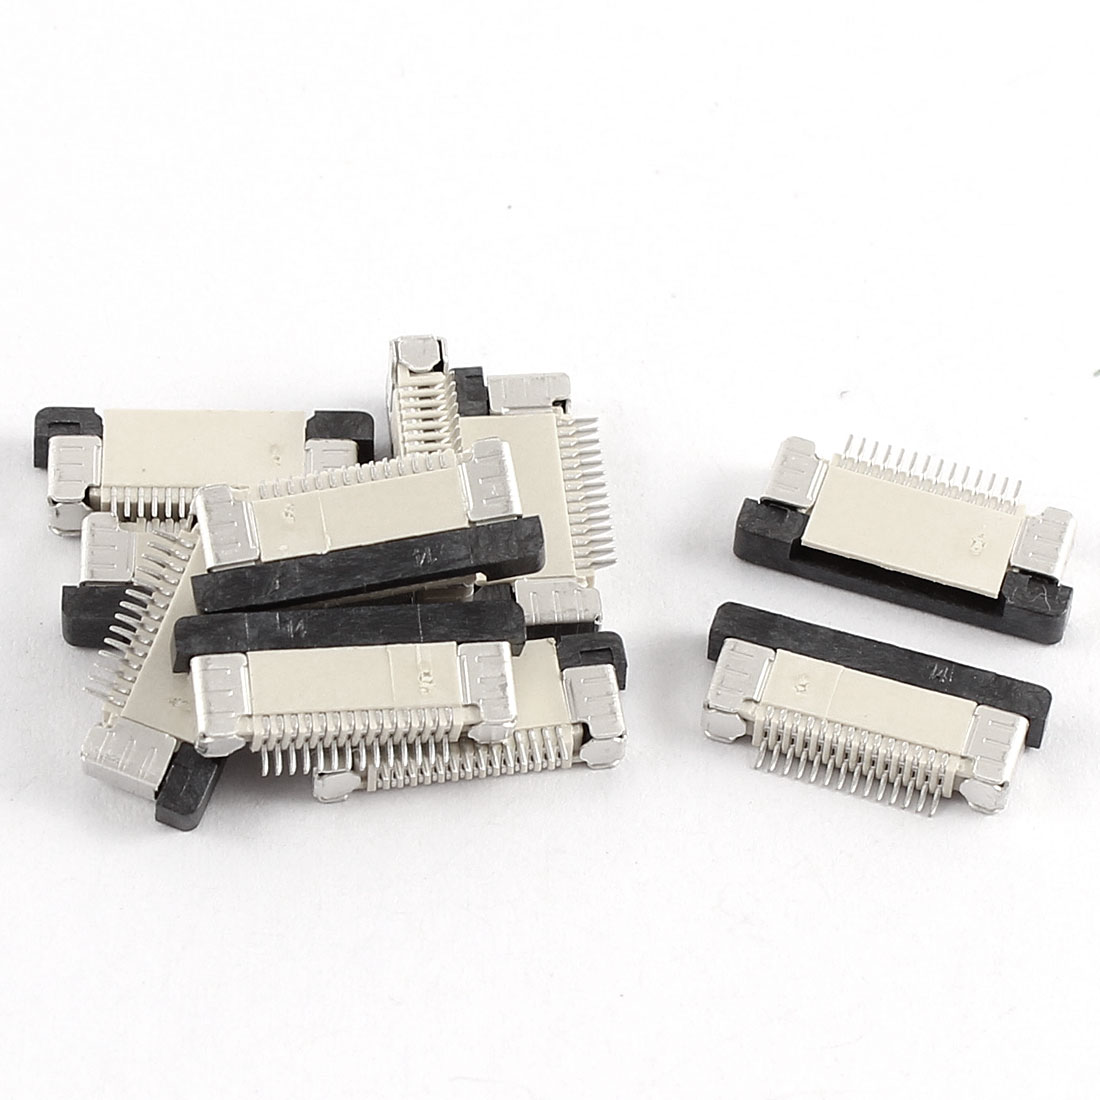 10 Pcs Bottom Port 14Pin 0.5mm Pitch FFC FPC Ribbon Sockets Connector - image 1 of 1